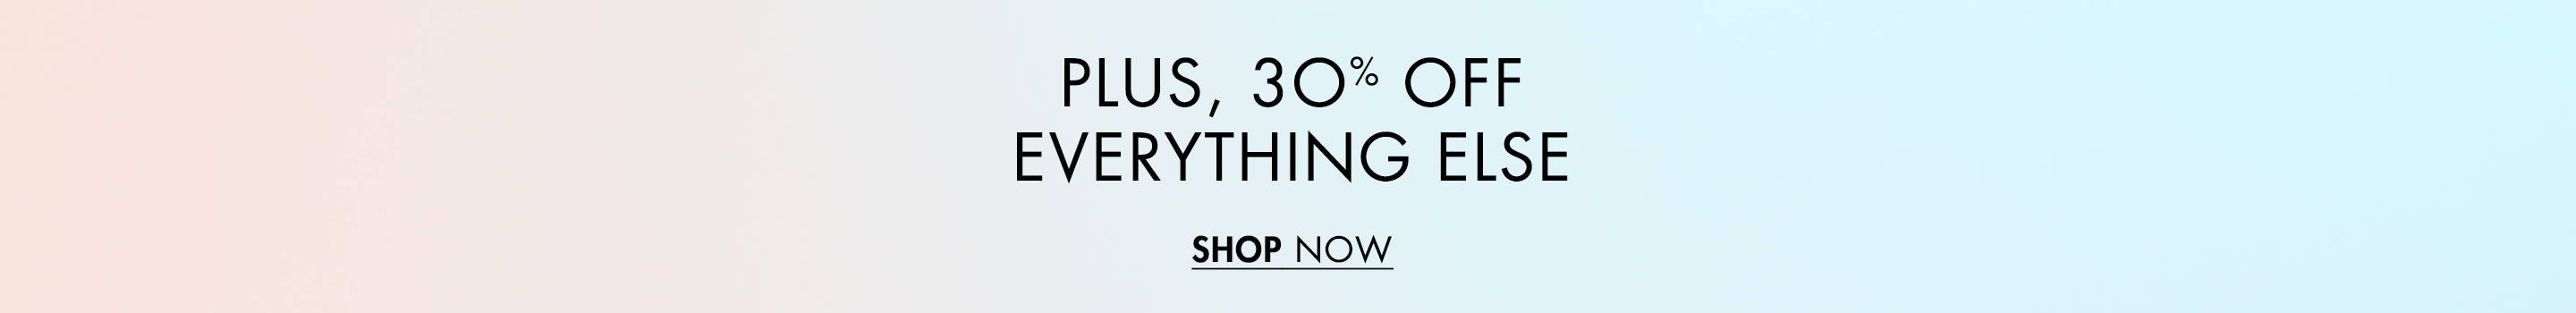 Plus 30% Off Everything Else